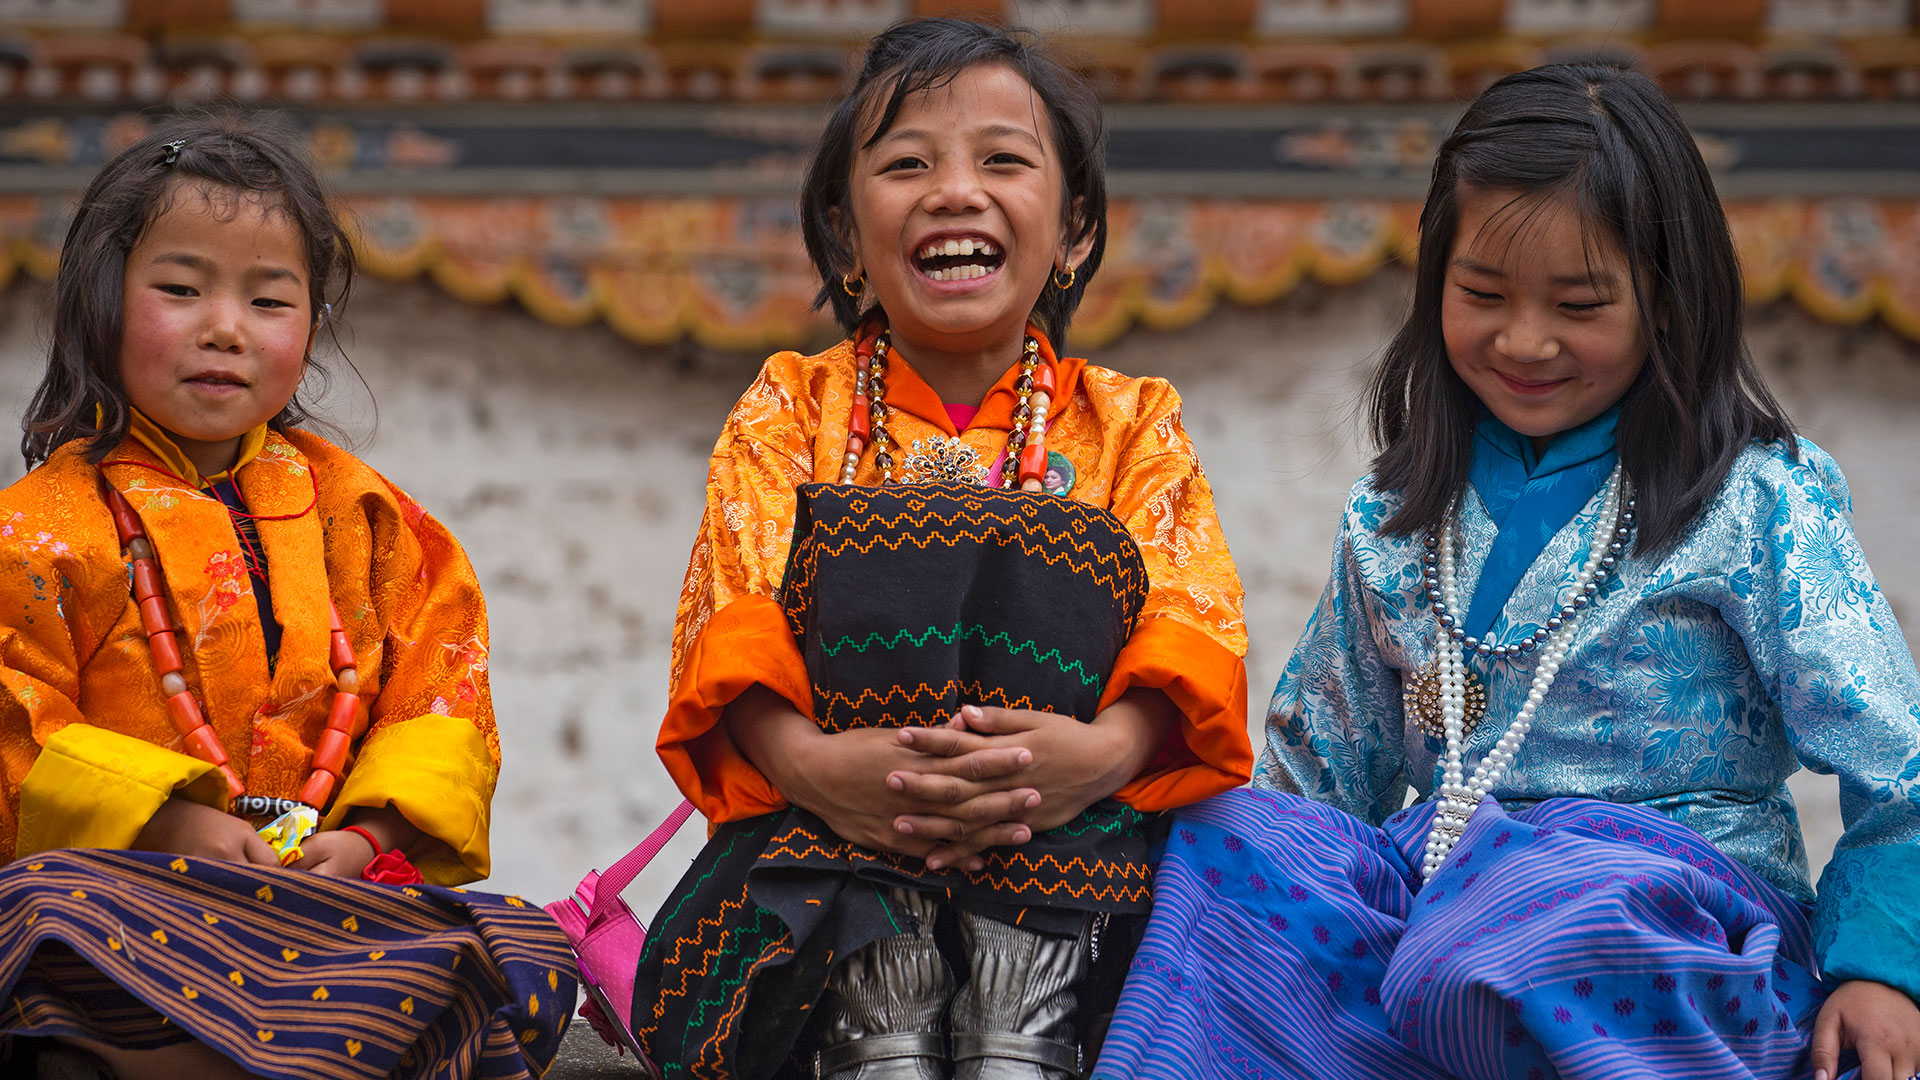 Children at Paro Rinpung Dzong in Bhutan